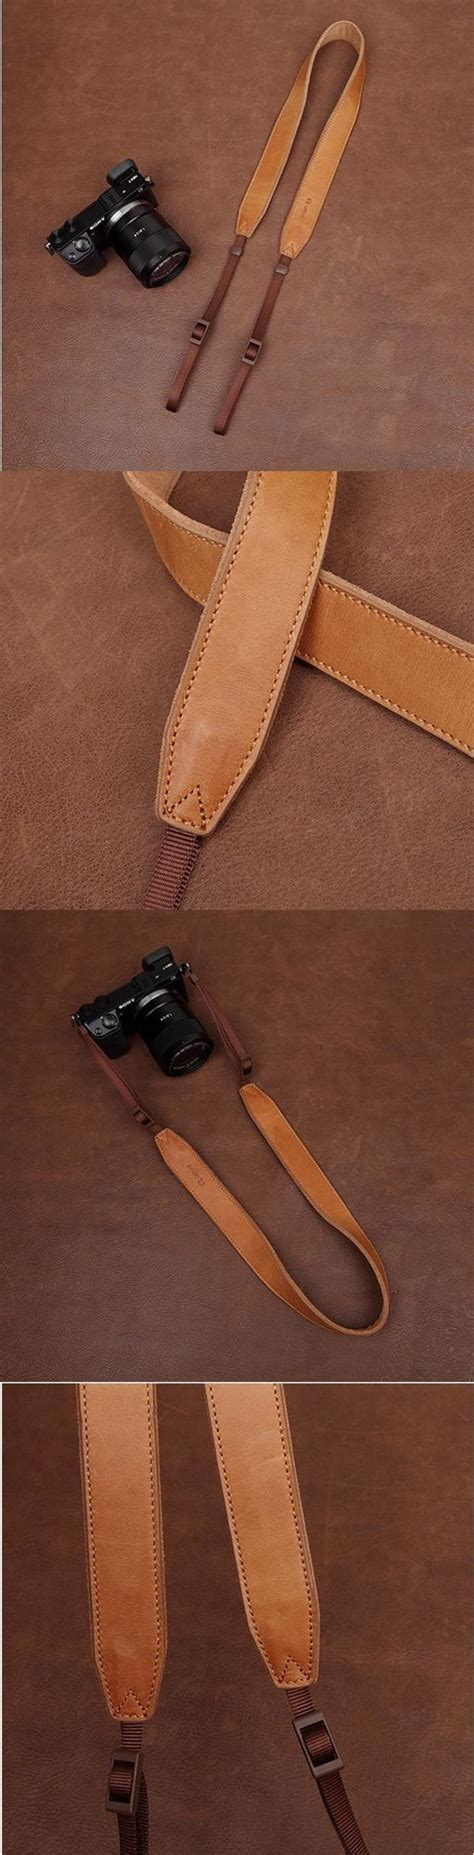 Easy Handmade Accessories - best 25 leather accessories ideas on